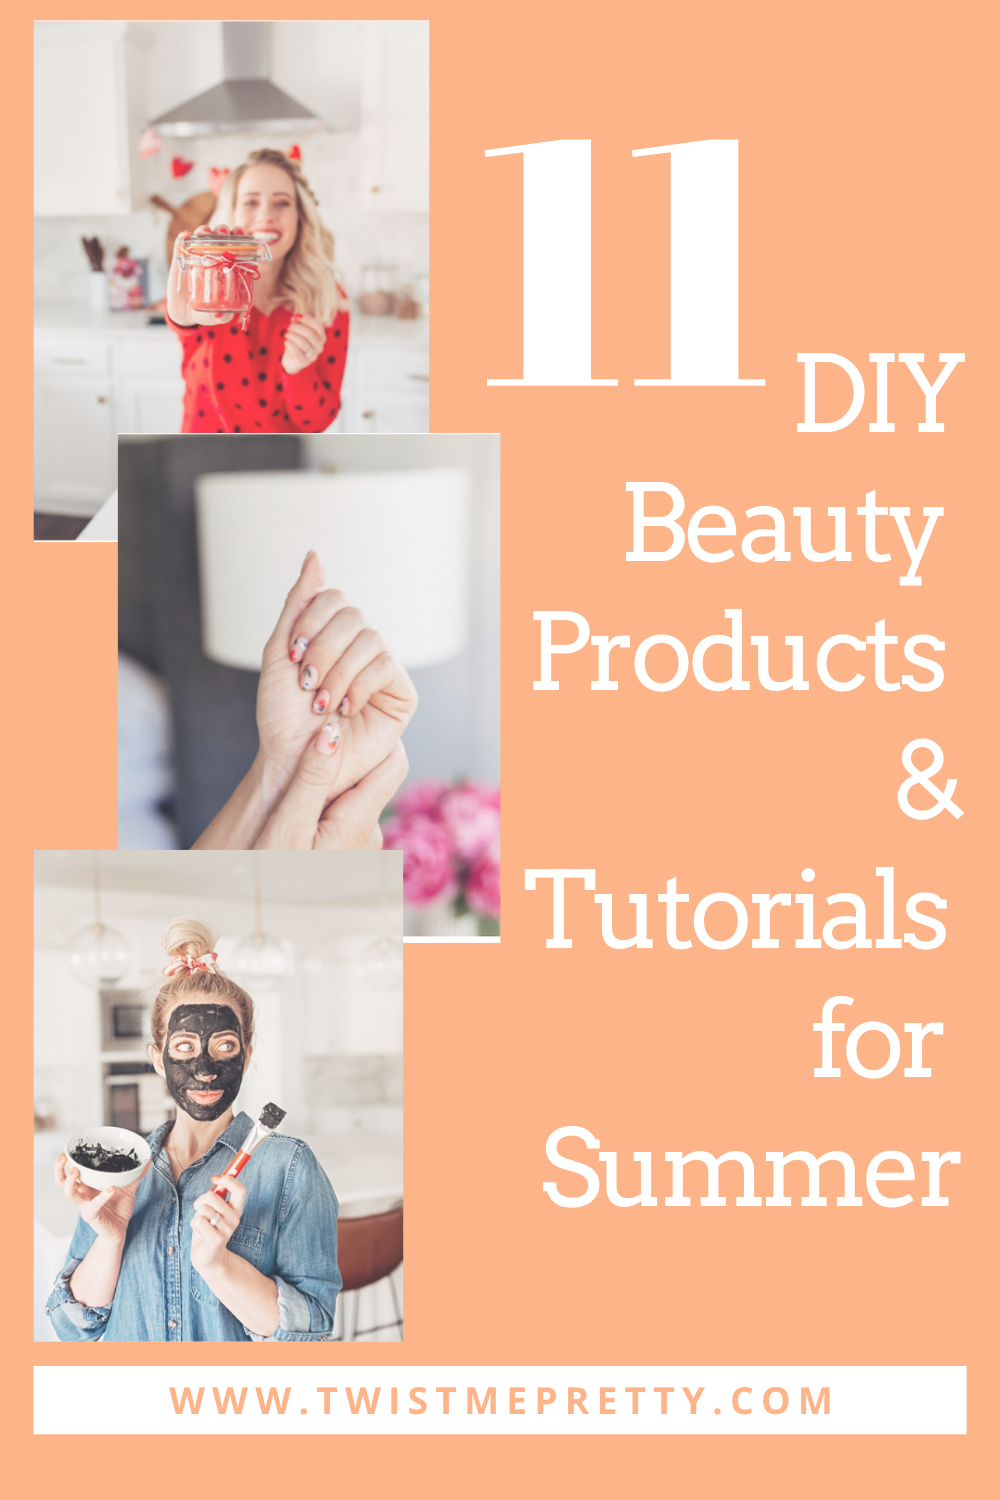 11 diy beauty products and tutorials for summer. www.twistmepretty.com